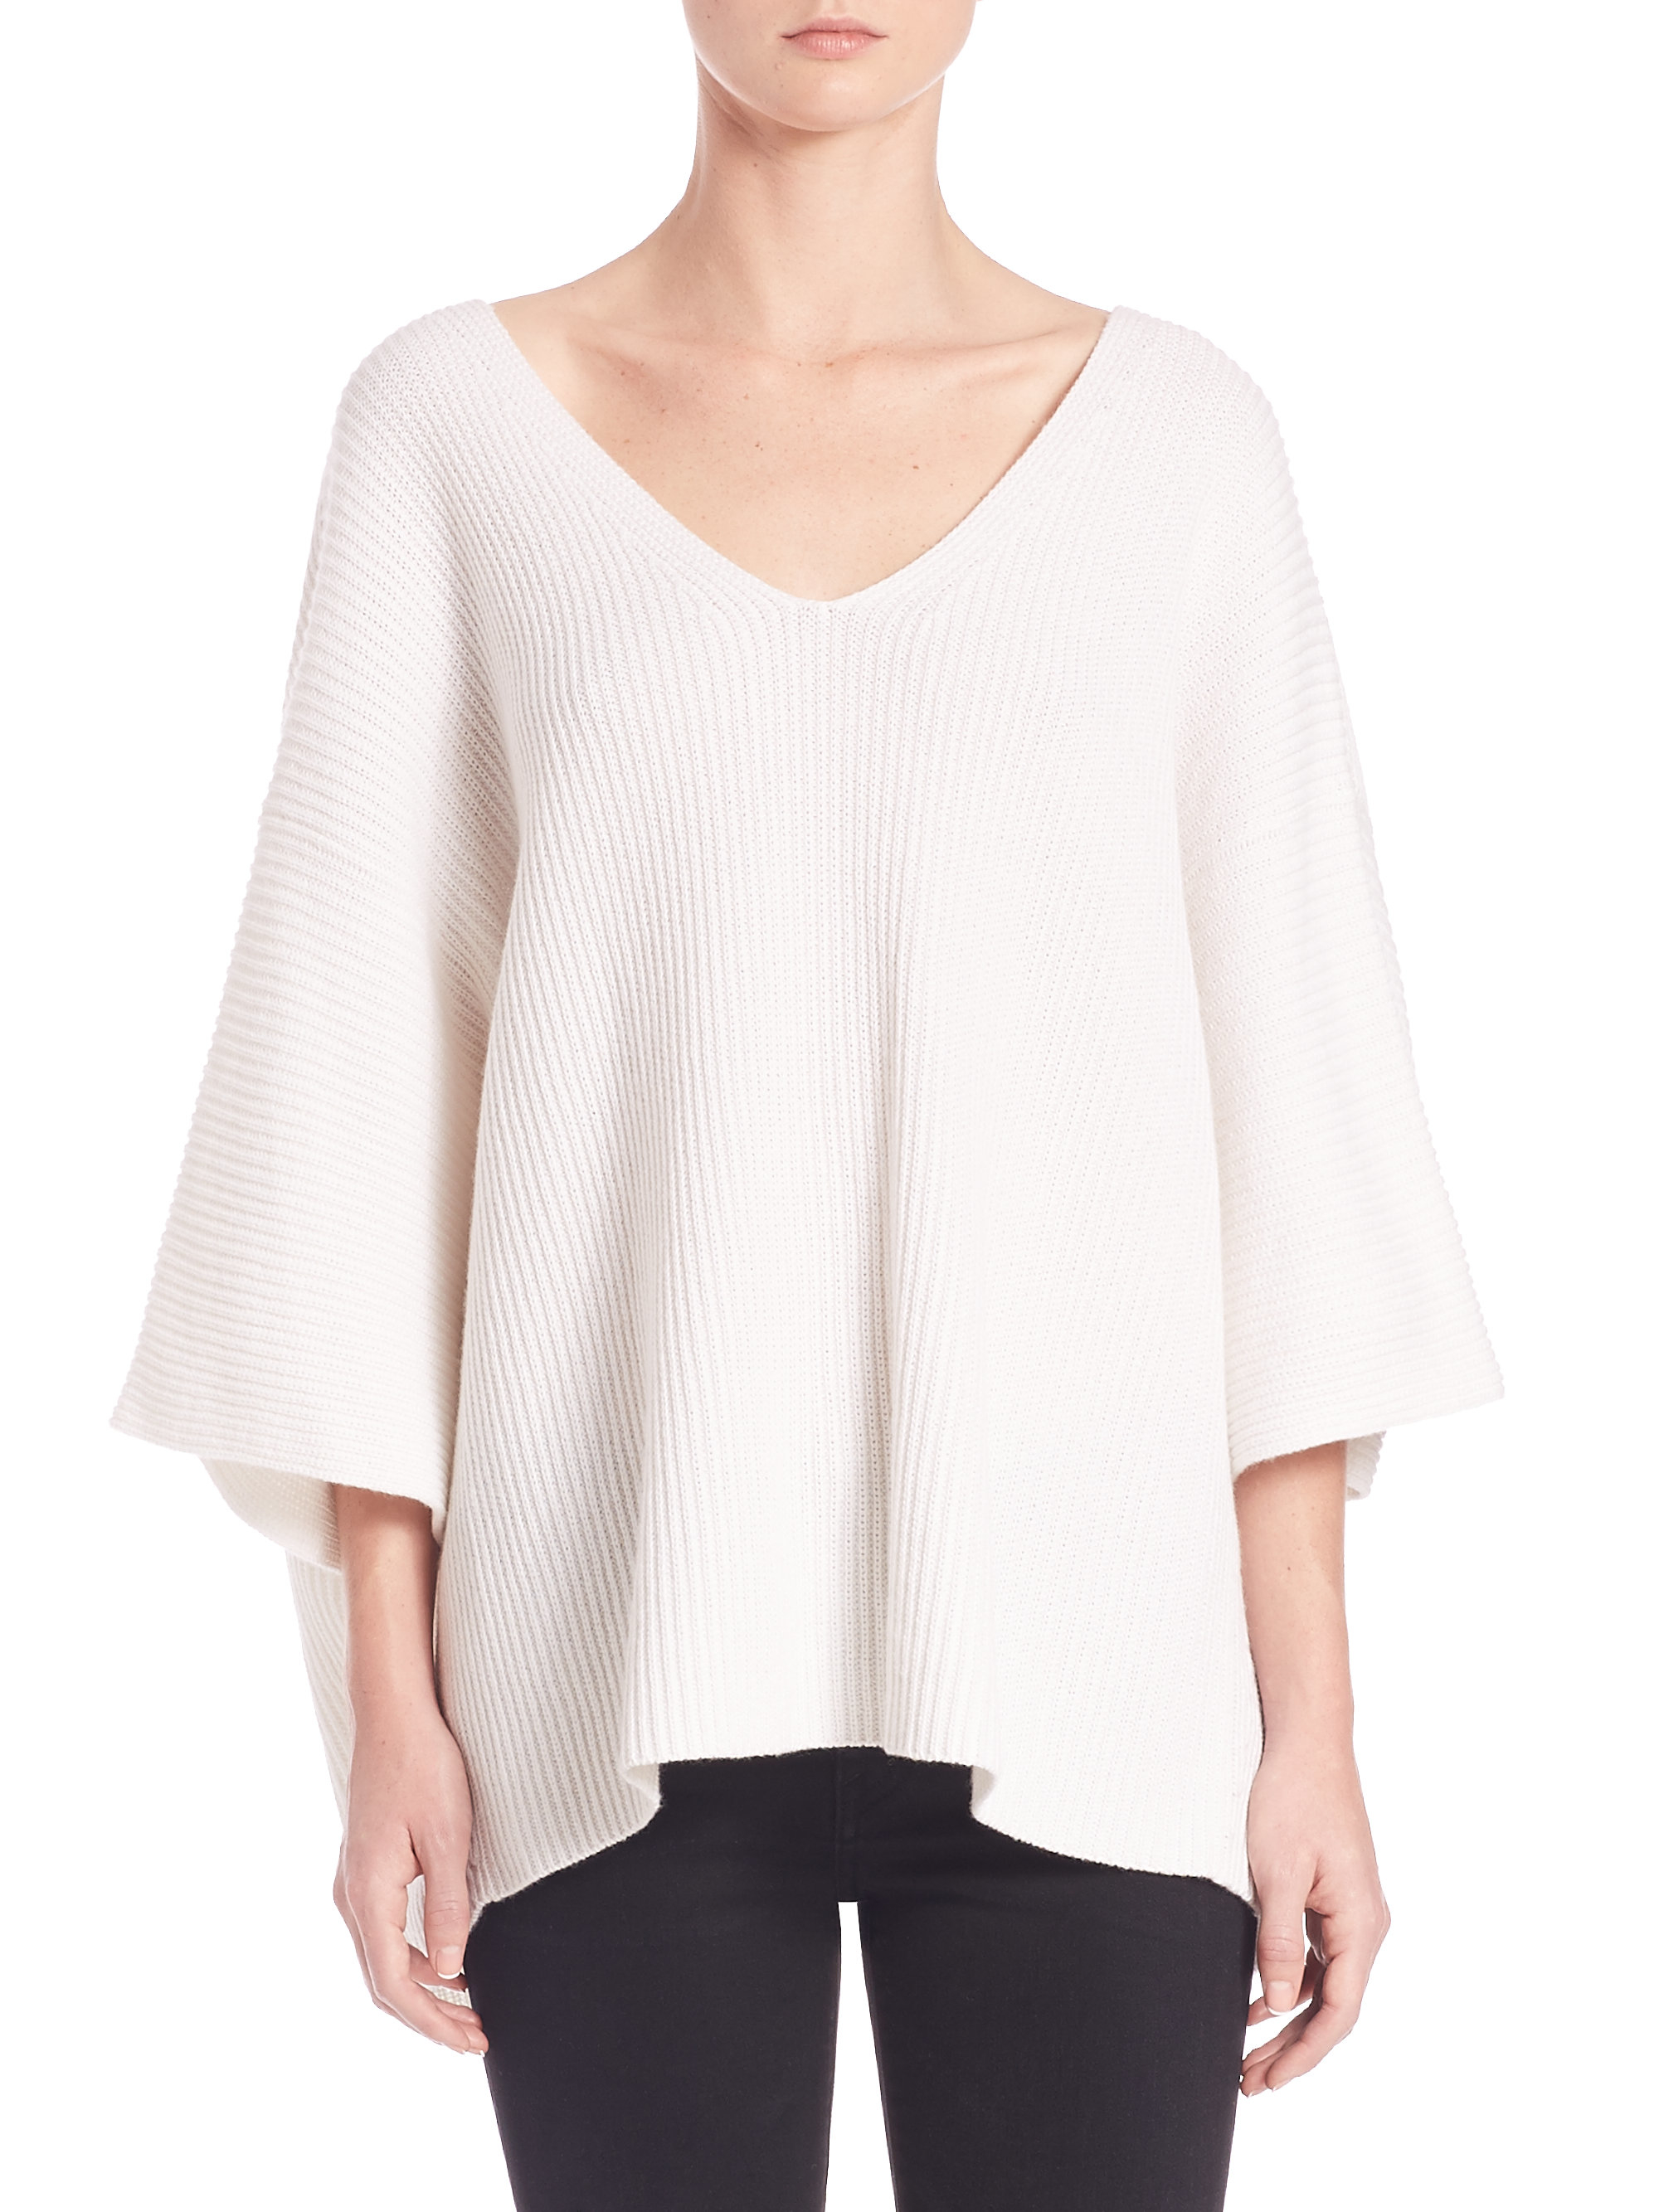 Helmut lang Cotton & Cashmere Dolman Sweater in White | Lyst